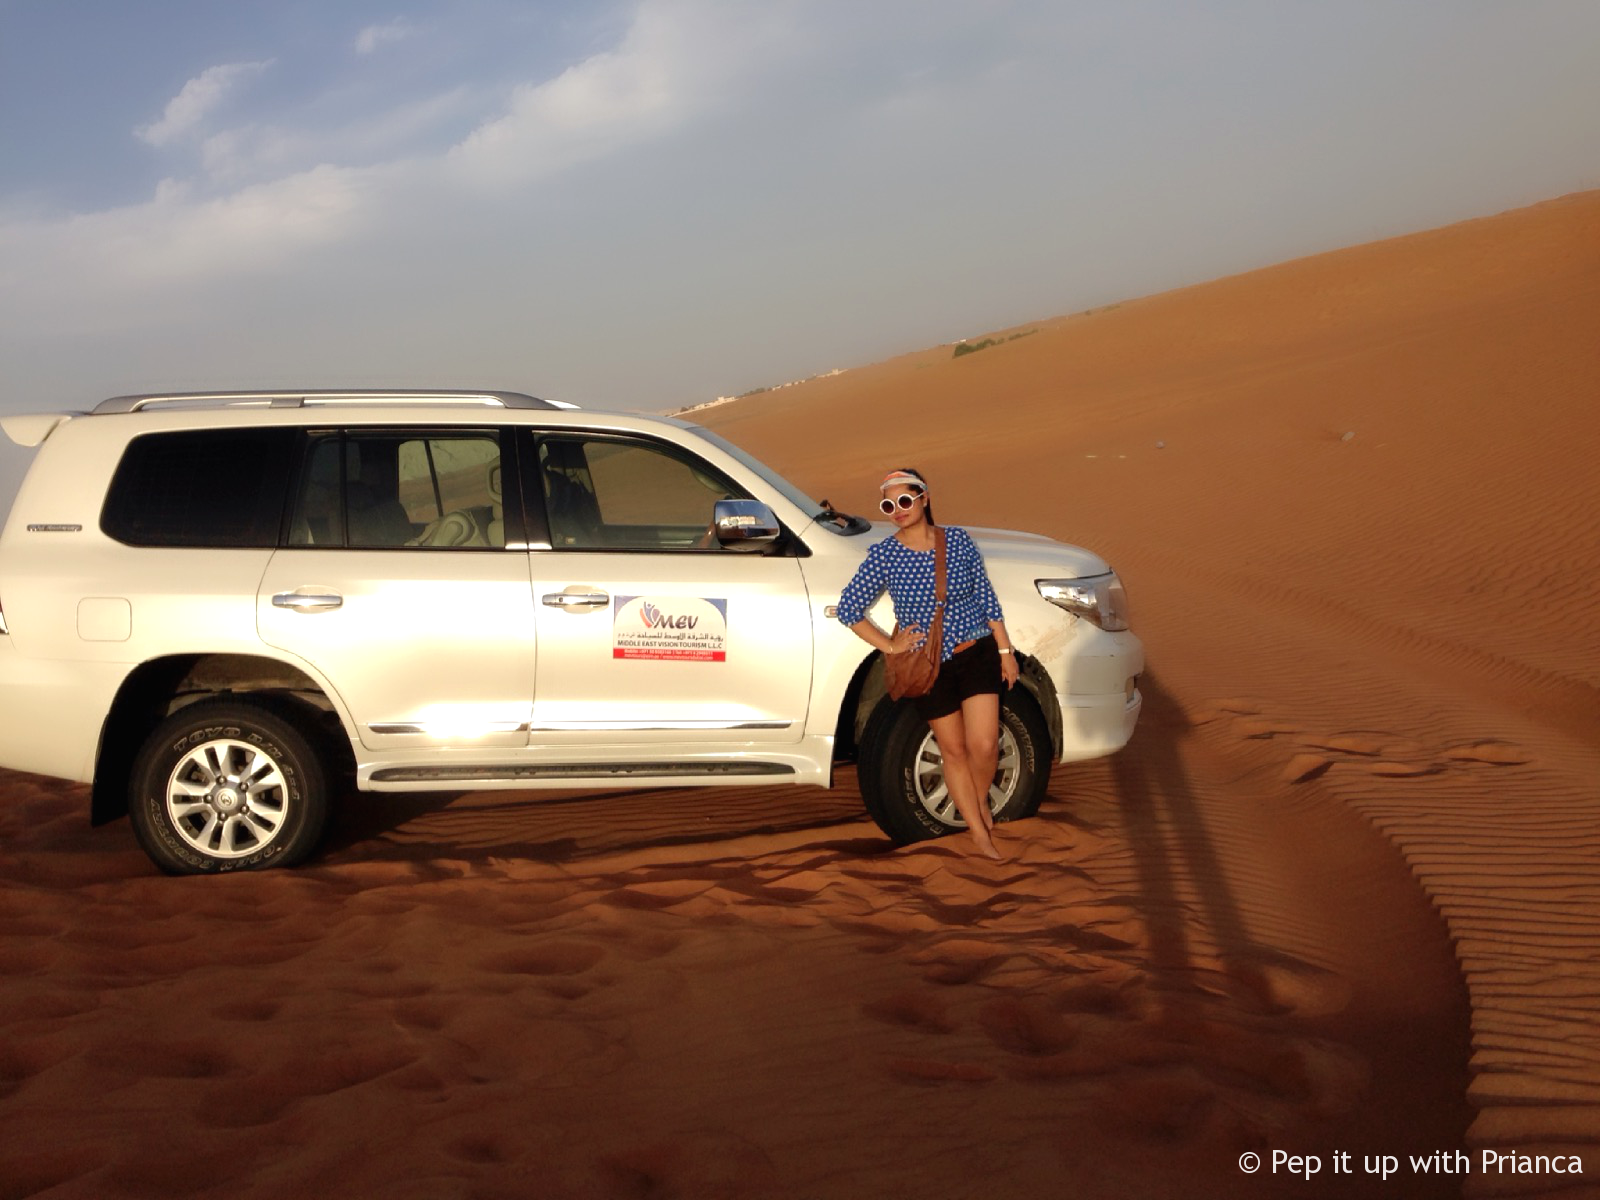 my ride to dubai desert pep it up with prianca - Travel to the Desert to 'Desert' Yourself & Find your Soul - Magnificent Dubai Desert